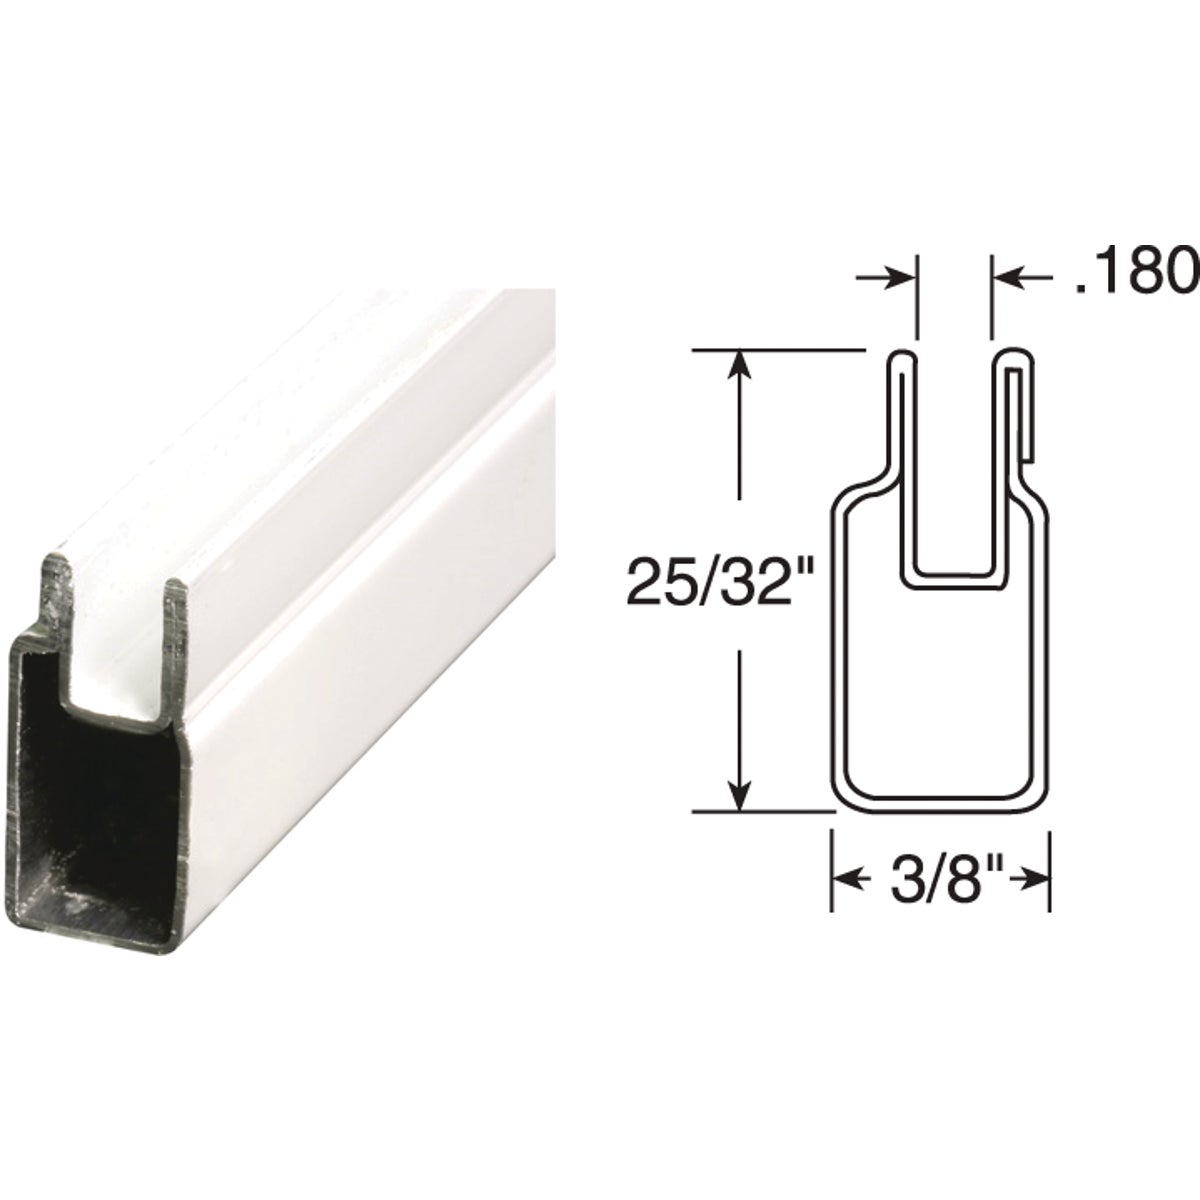 3/8X25/32X72WHT WN FRAME - PL14154 by Prime Line Products